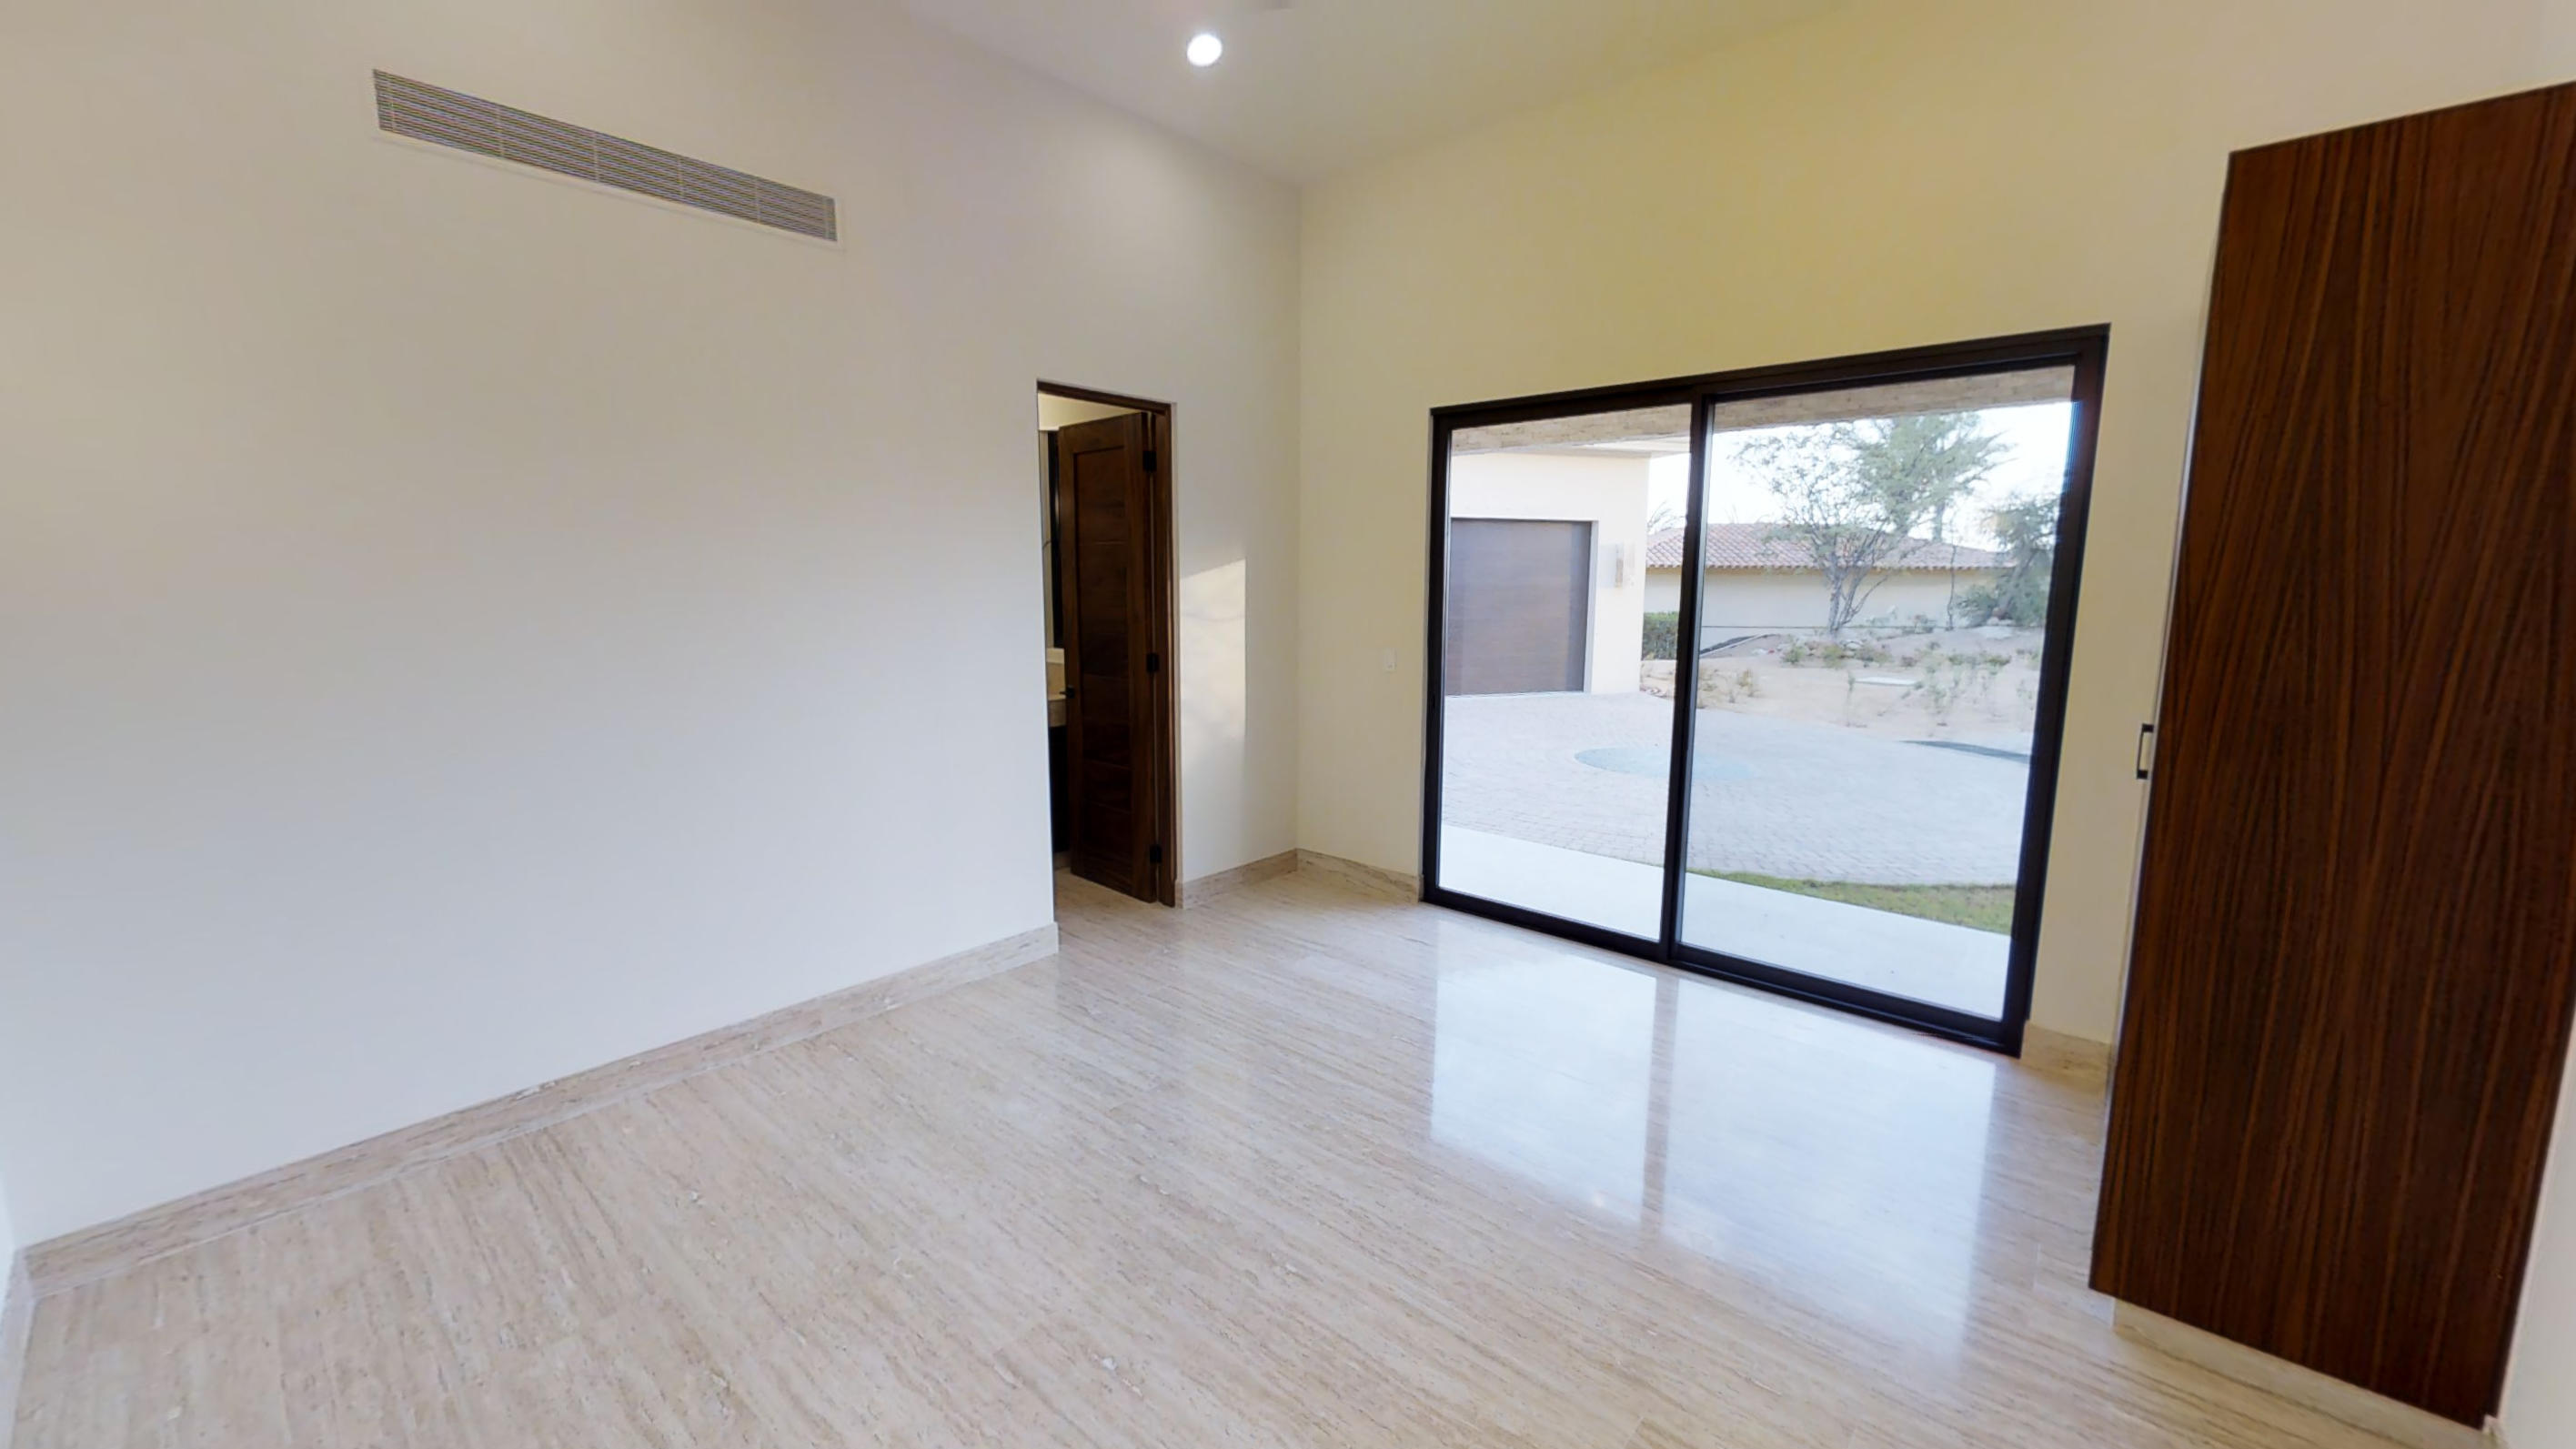 San Jose del Cabo, 4 Bedrooms Bedrooms, ,4 BathroomsBathrooms,House,For Sale,Padre Kino,17-1492